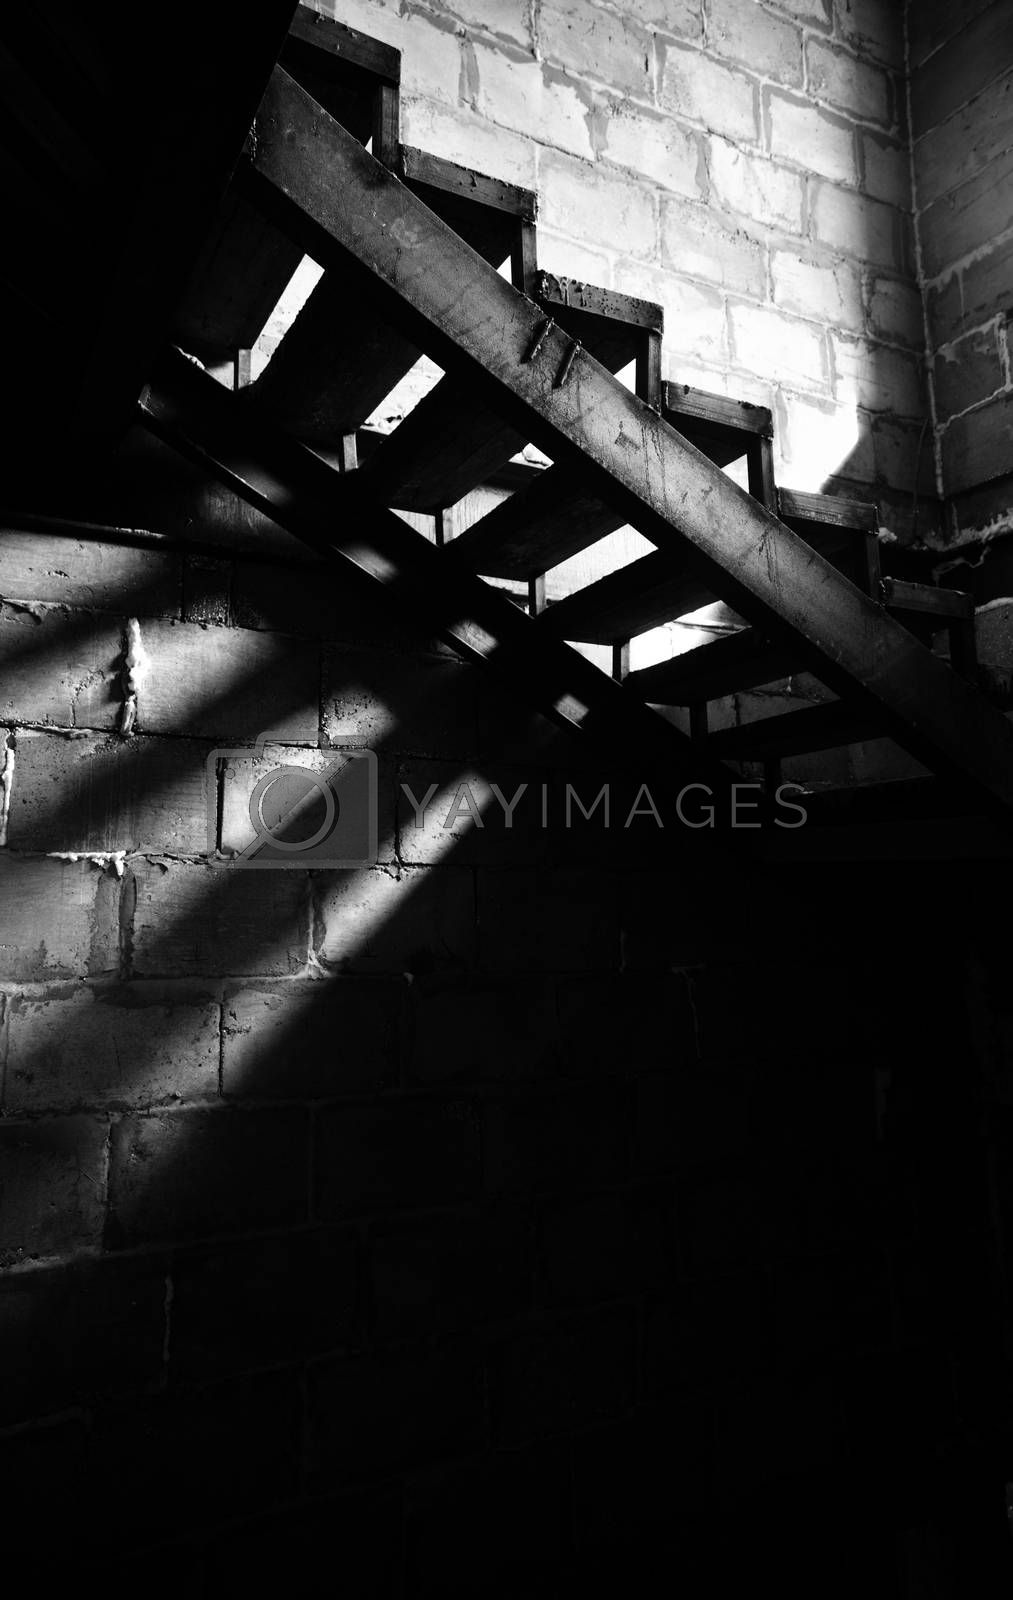 Metal old staircase in the abandoned building. Natural light and shadows